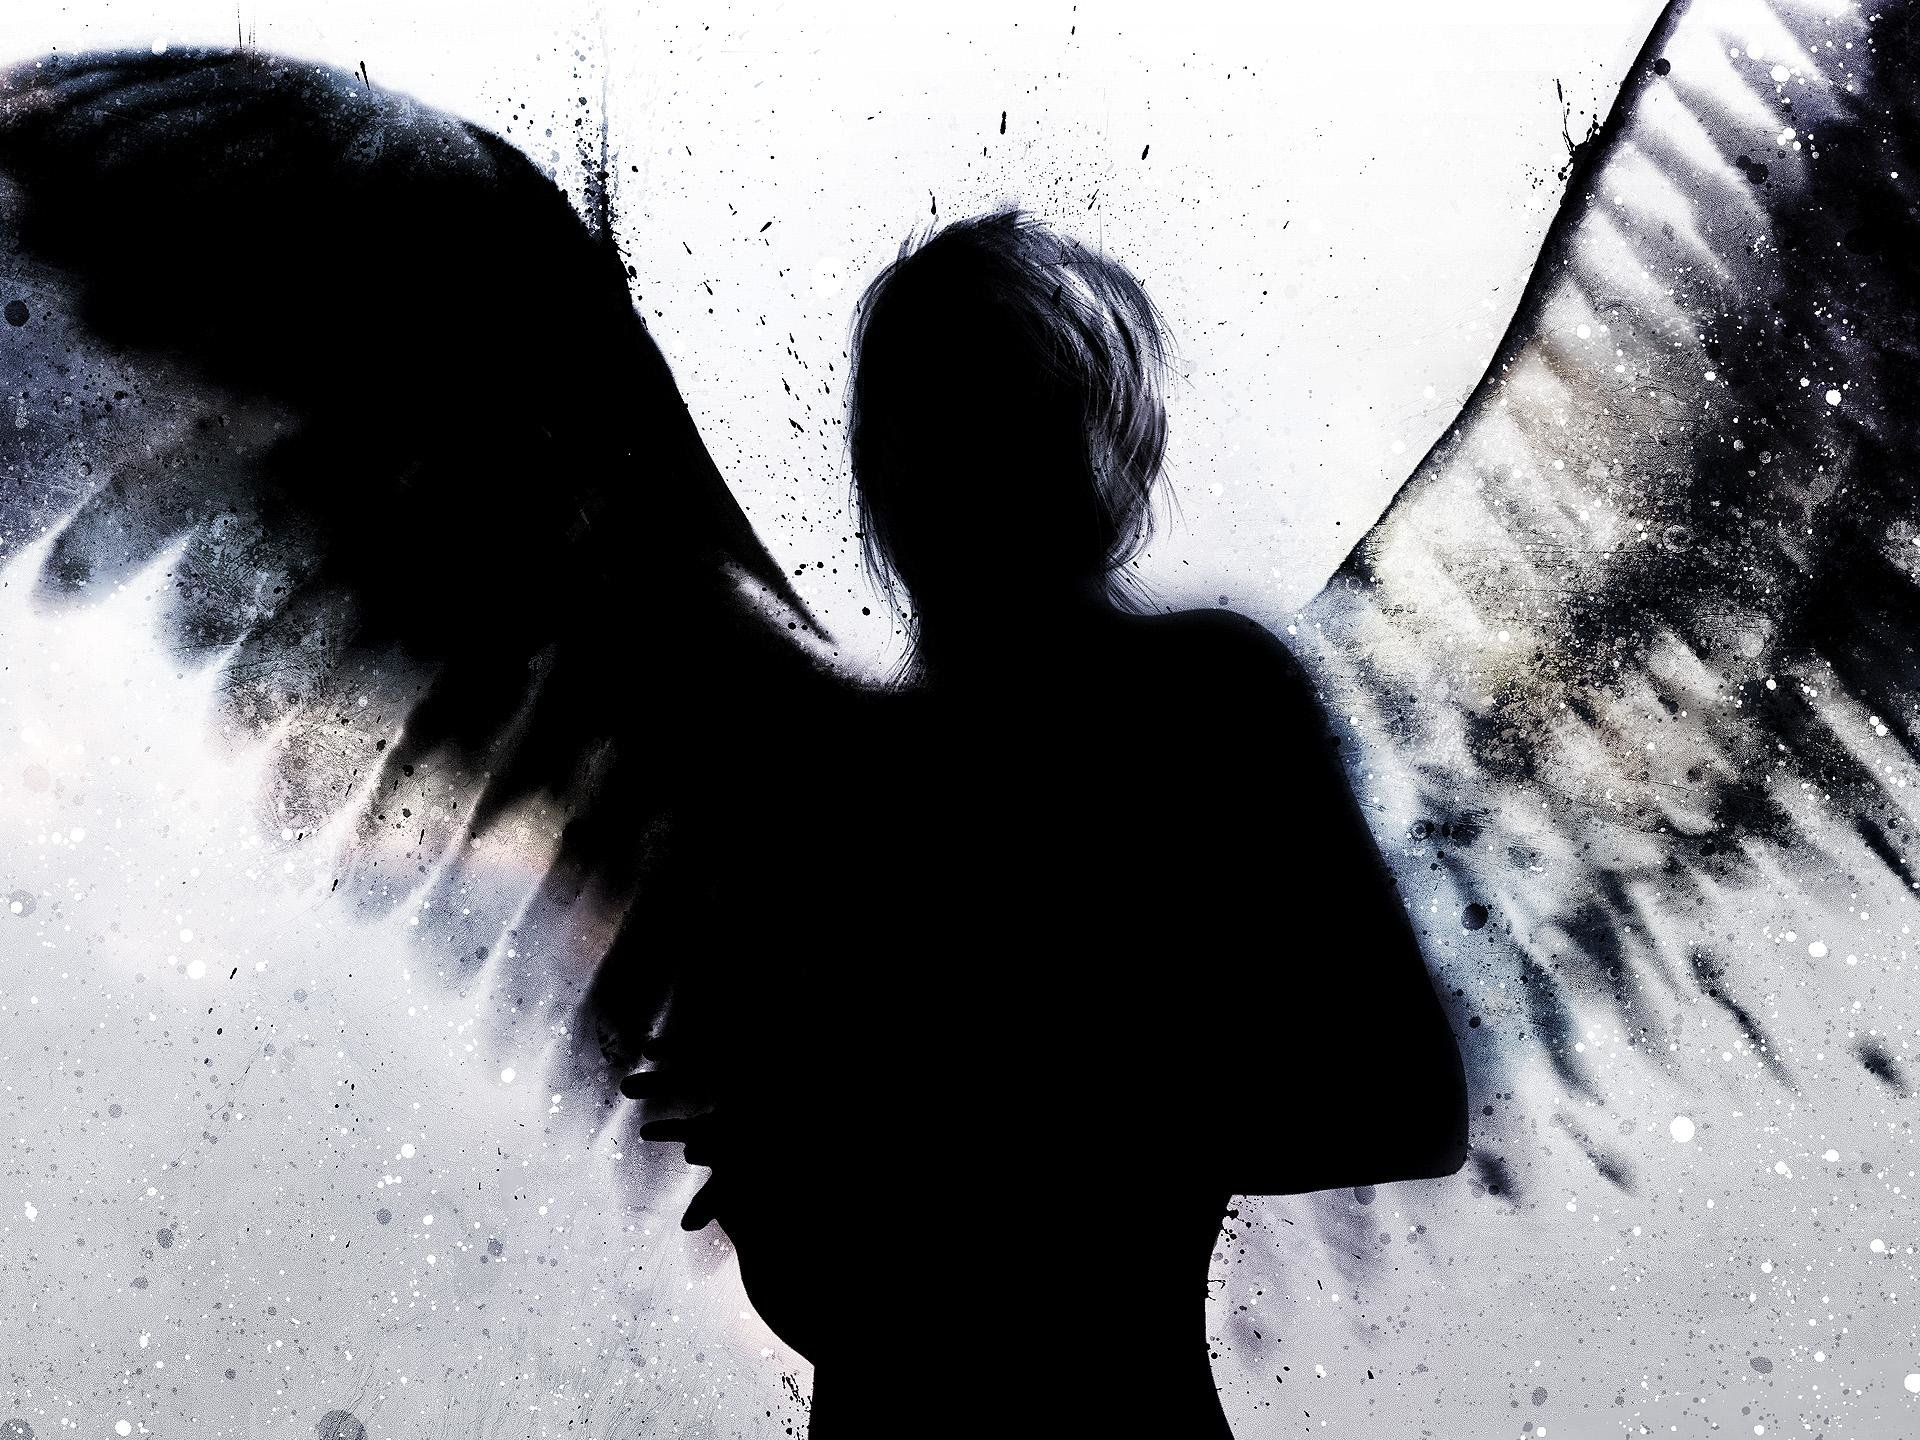 Free download Dark angel background ID:142161 hd 1920x1440 for computer